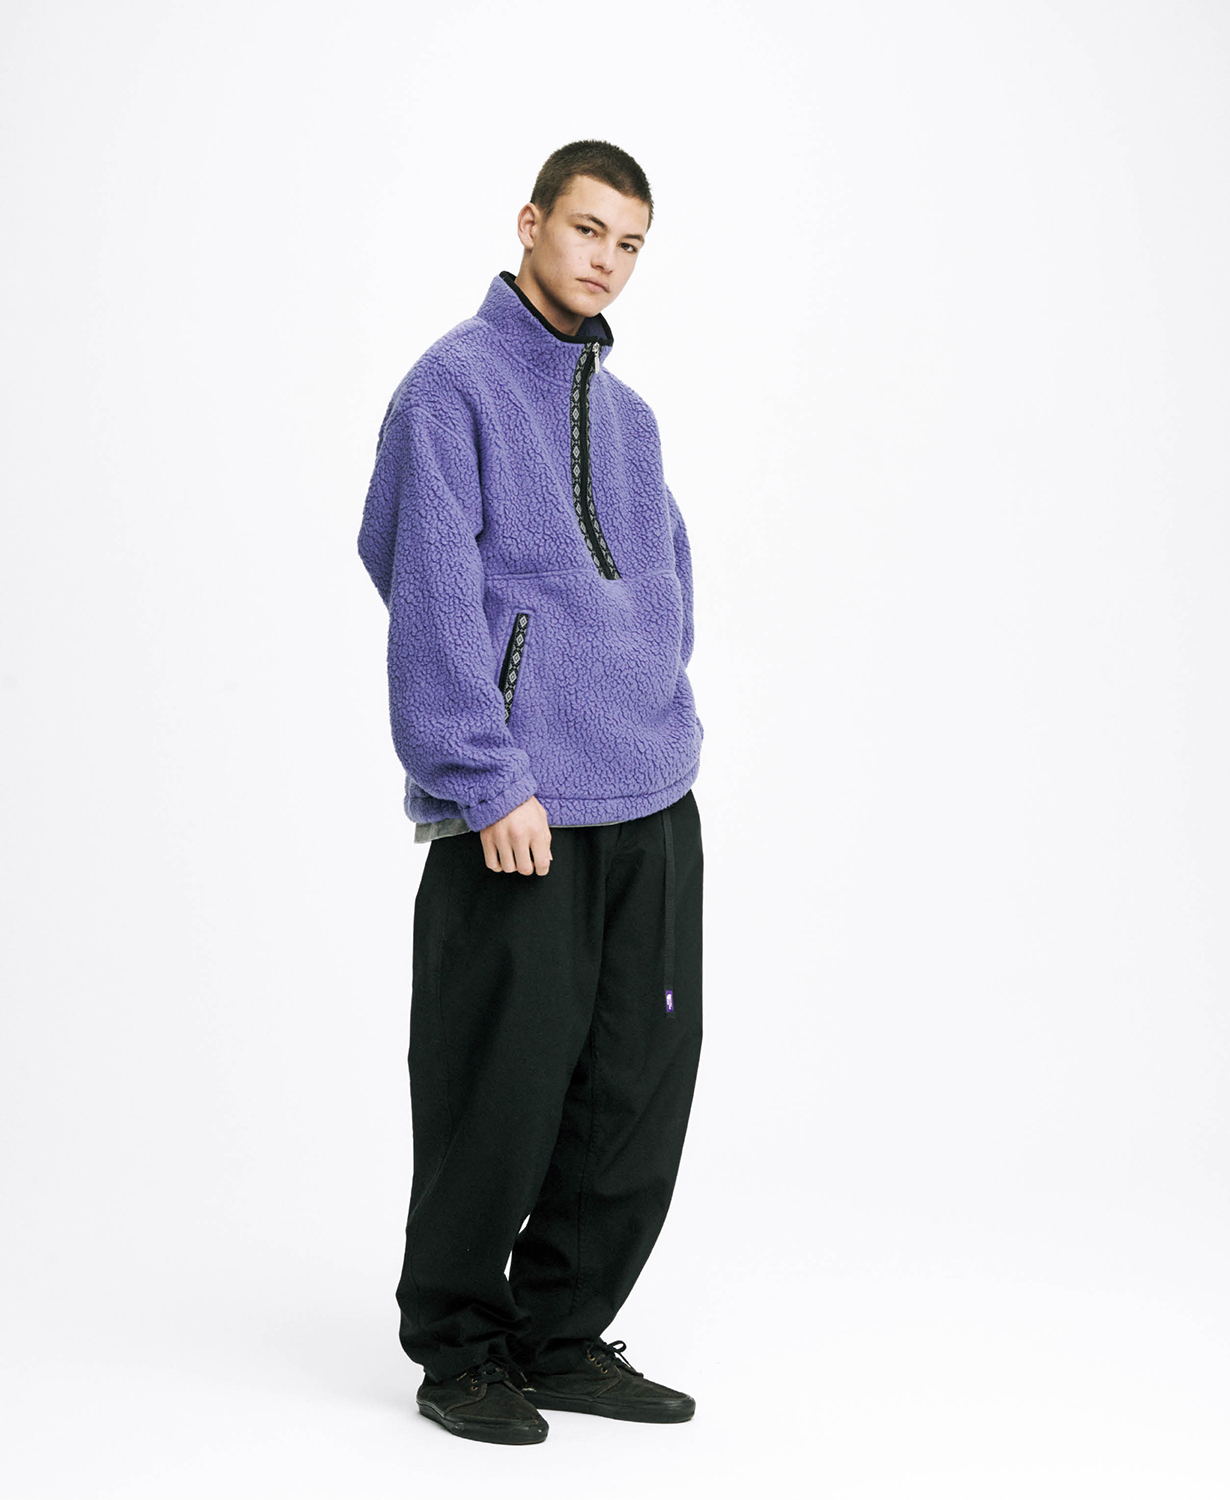 The North Face Purple Label Autumn/Winter '19